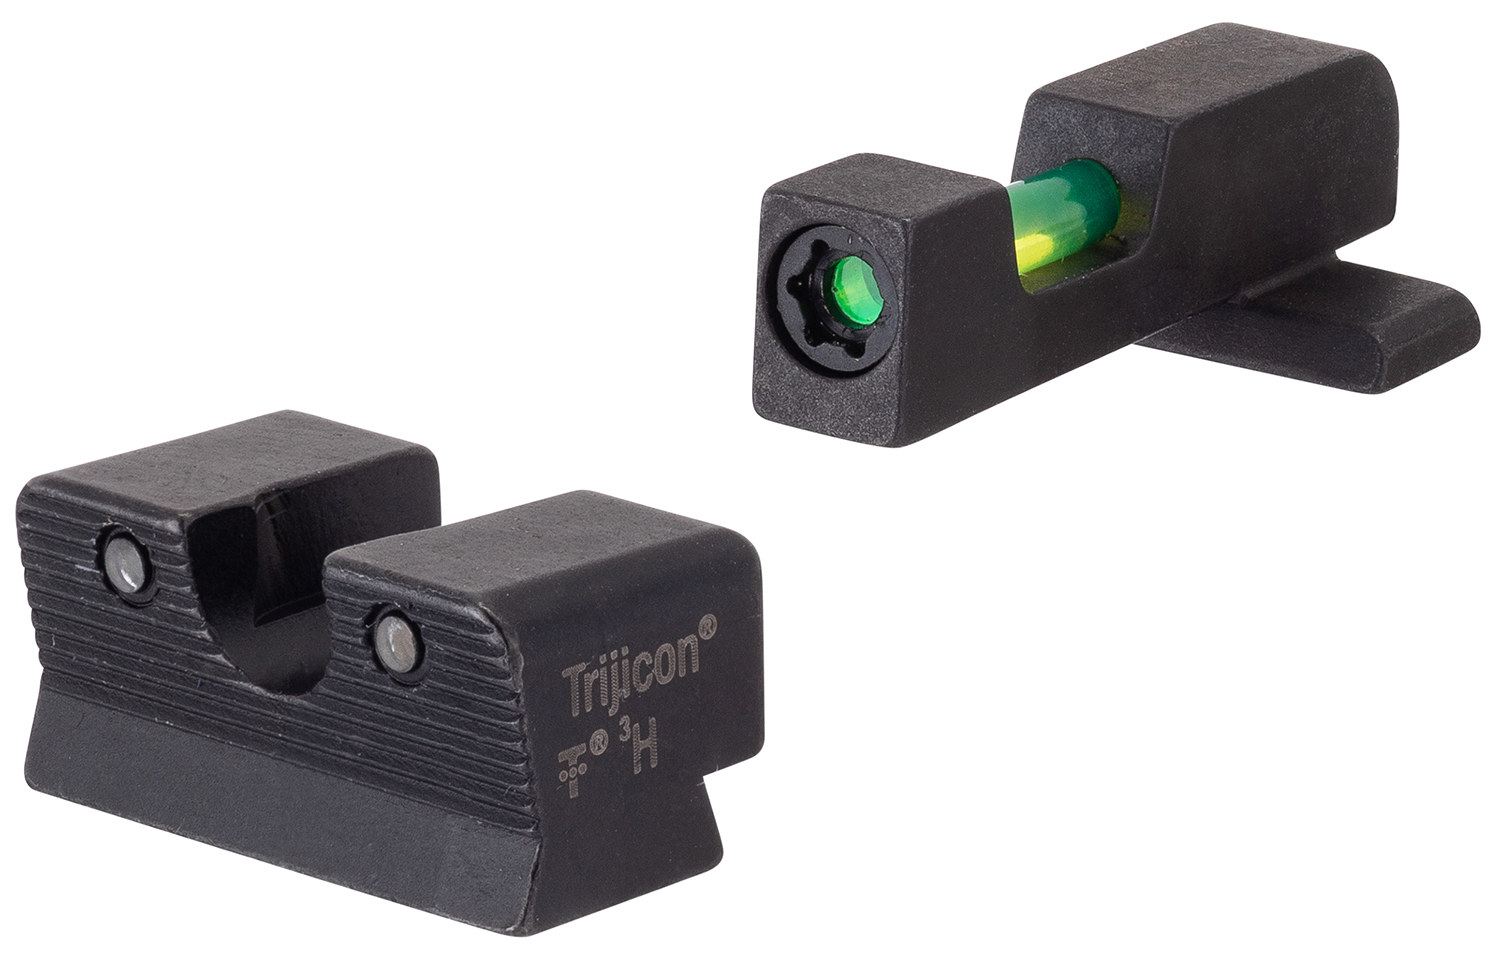 Trijicon 601116 DI Night Sight Set Interchangeable Tritium/Fiber Optic Green with Black Outline Front, Tritium Green with Black Outline Rear Black Frame for Springfield XD, XD Mod.2, XD-M